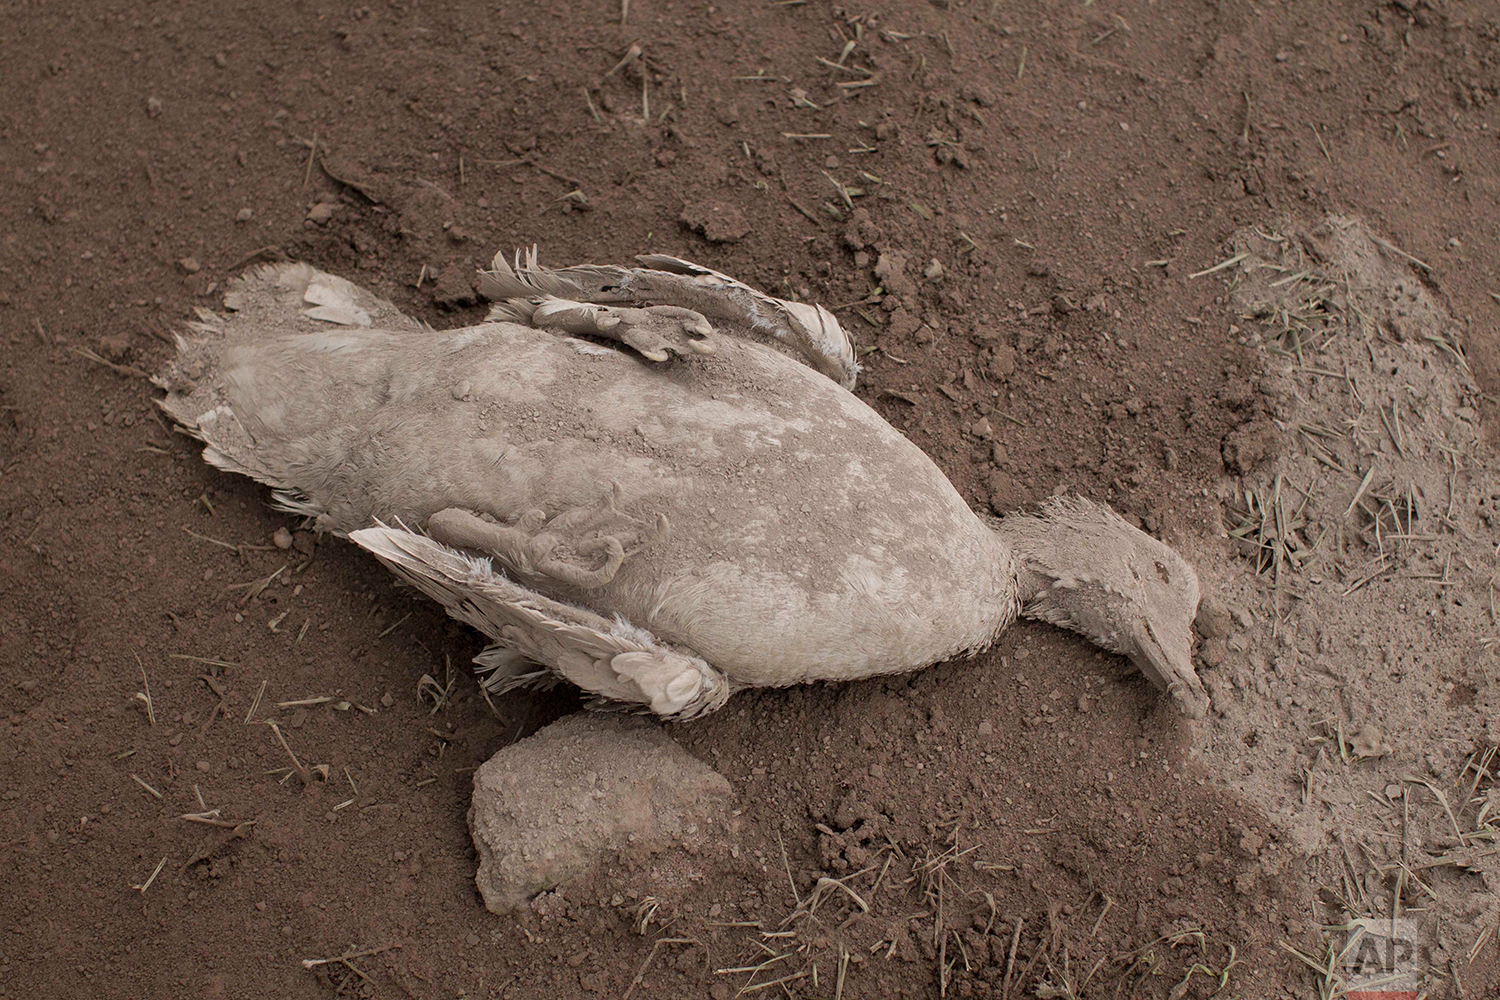 """The carcass of a duck blanketed with heavy ash spewed by the Volcan de Fuego, or """"Volcano of Fire,"""" lies on the ground in Escuintla, Guatemala, Monday, June 4, 2018. (AP Photo/Luis Soto)"""